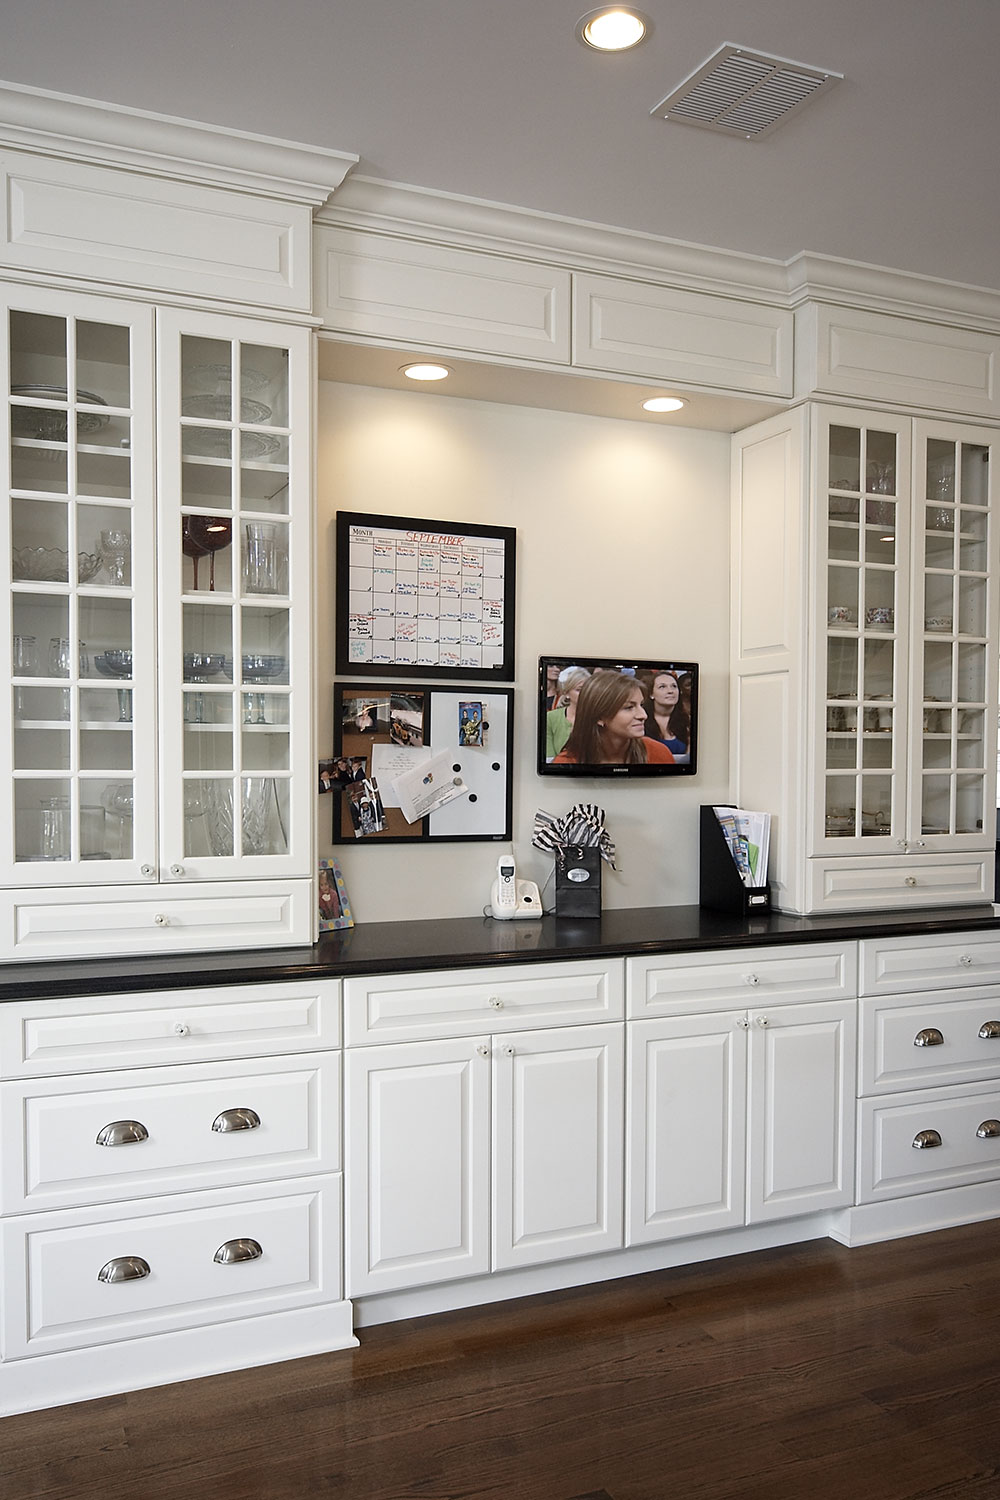 White Kitchen Built-In China Cabinet and TV